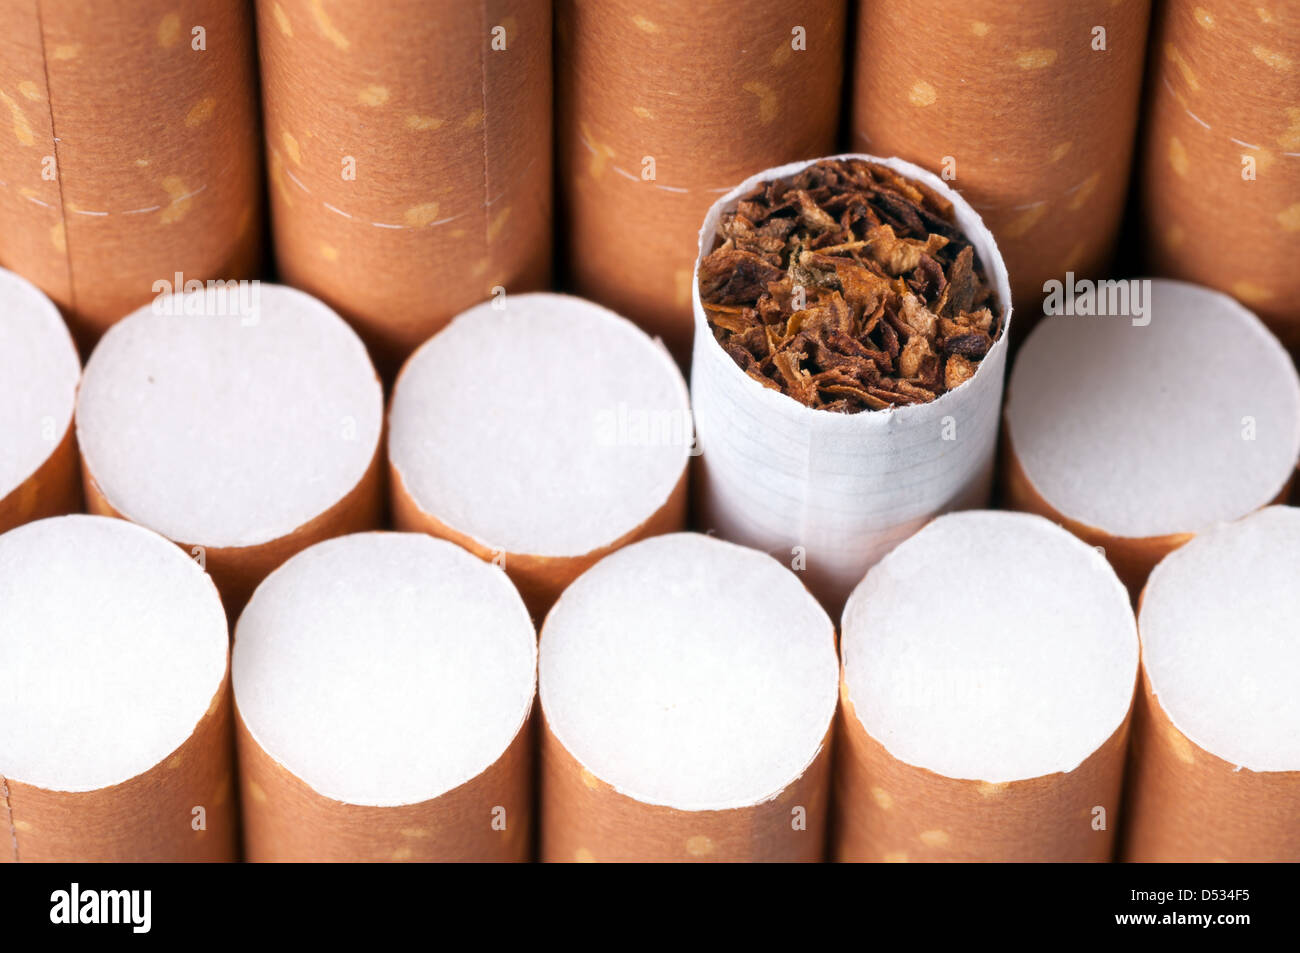 Tobacco in cigarettes with a brown filter close up - Stock Image